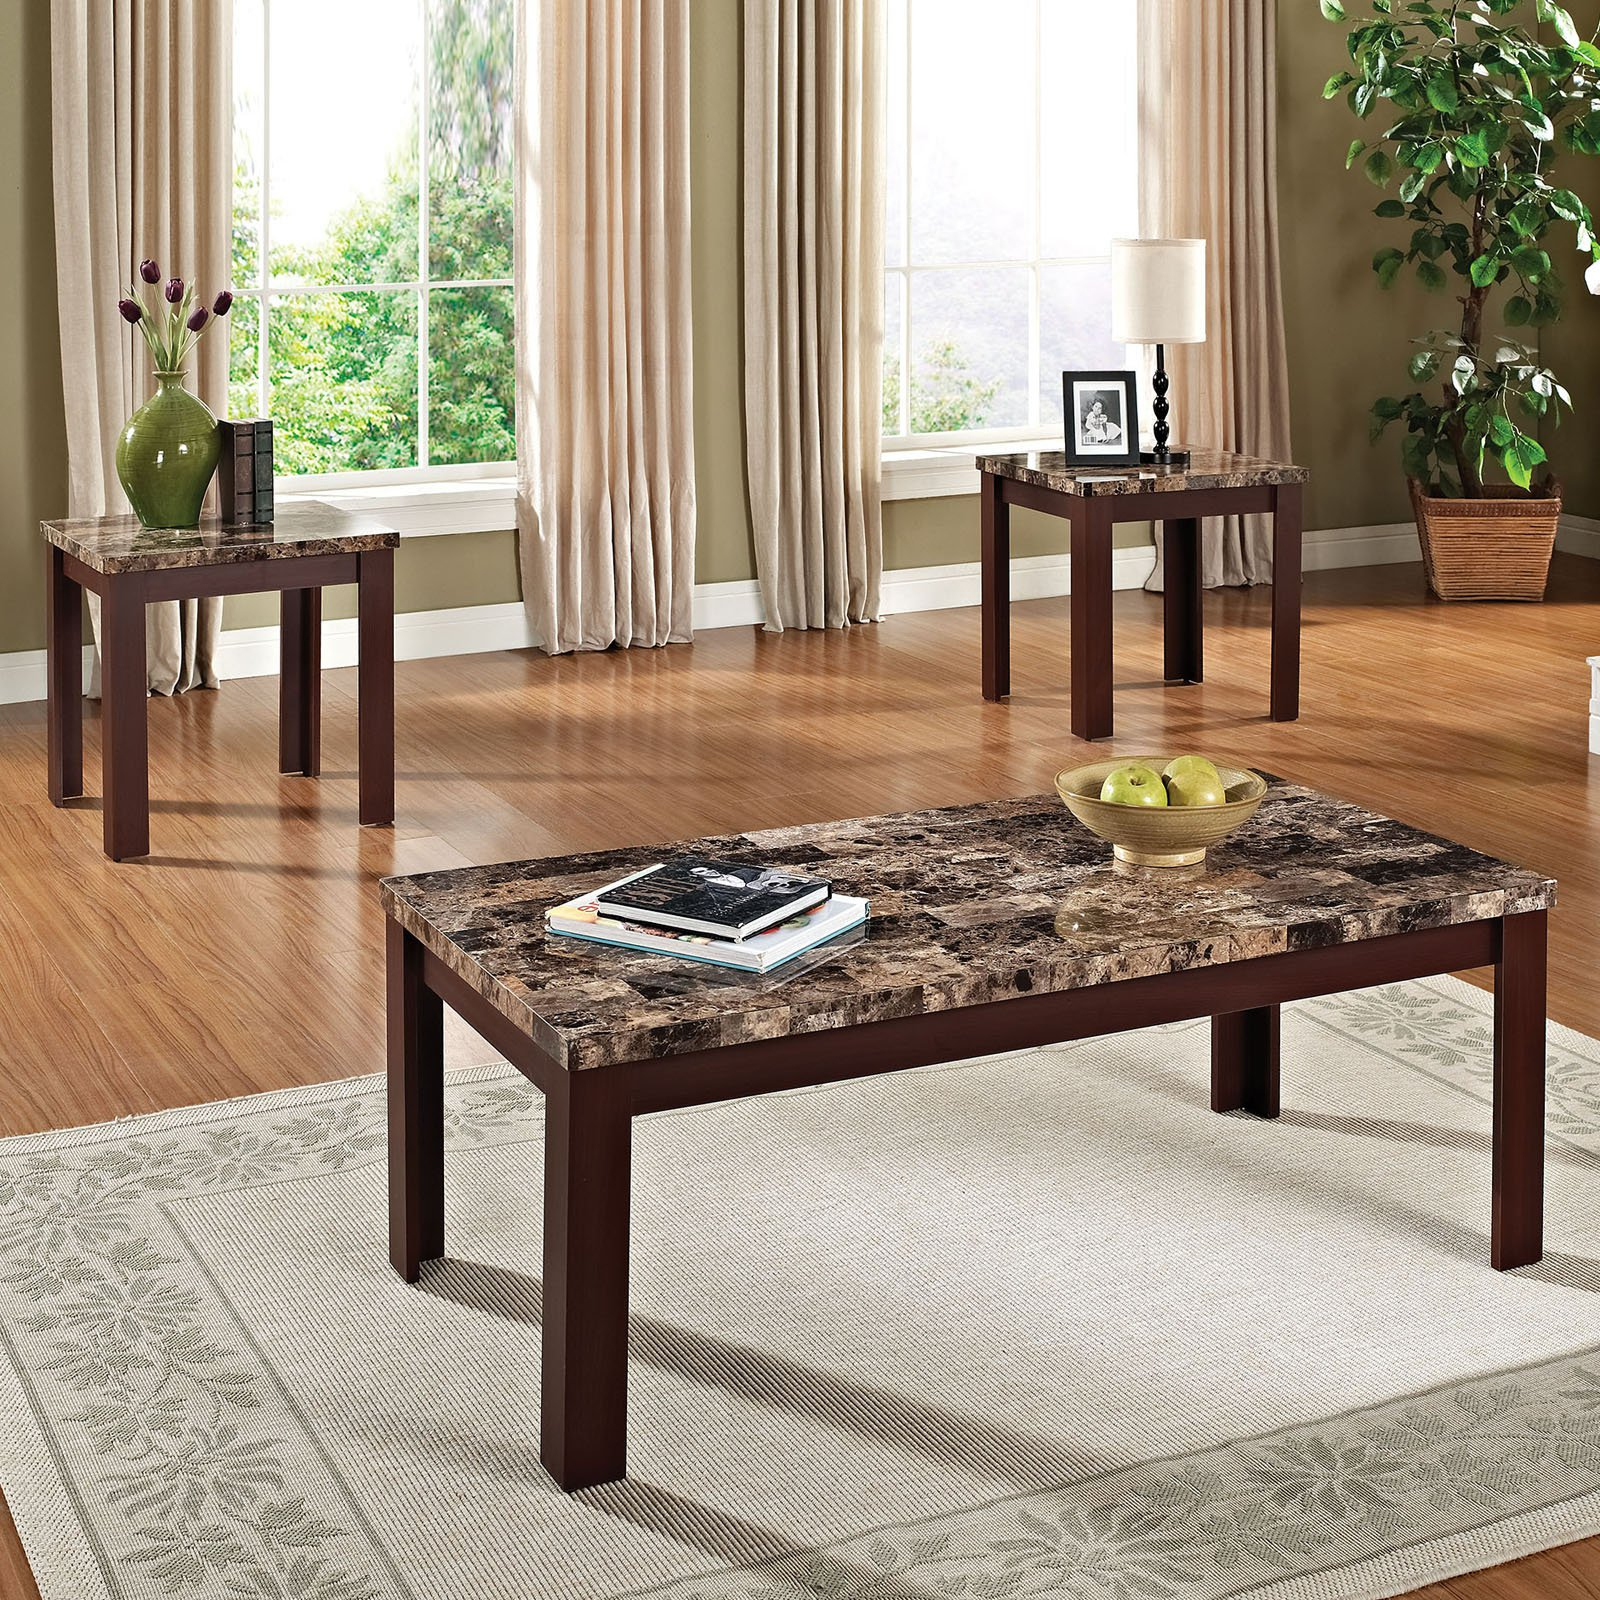 Sofa Table With Chairs For Popular Faux Marble 3 Piece Coffee And End Table Set, Multiple Colors (View 14 of 20)